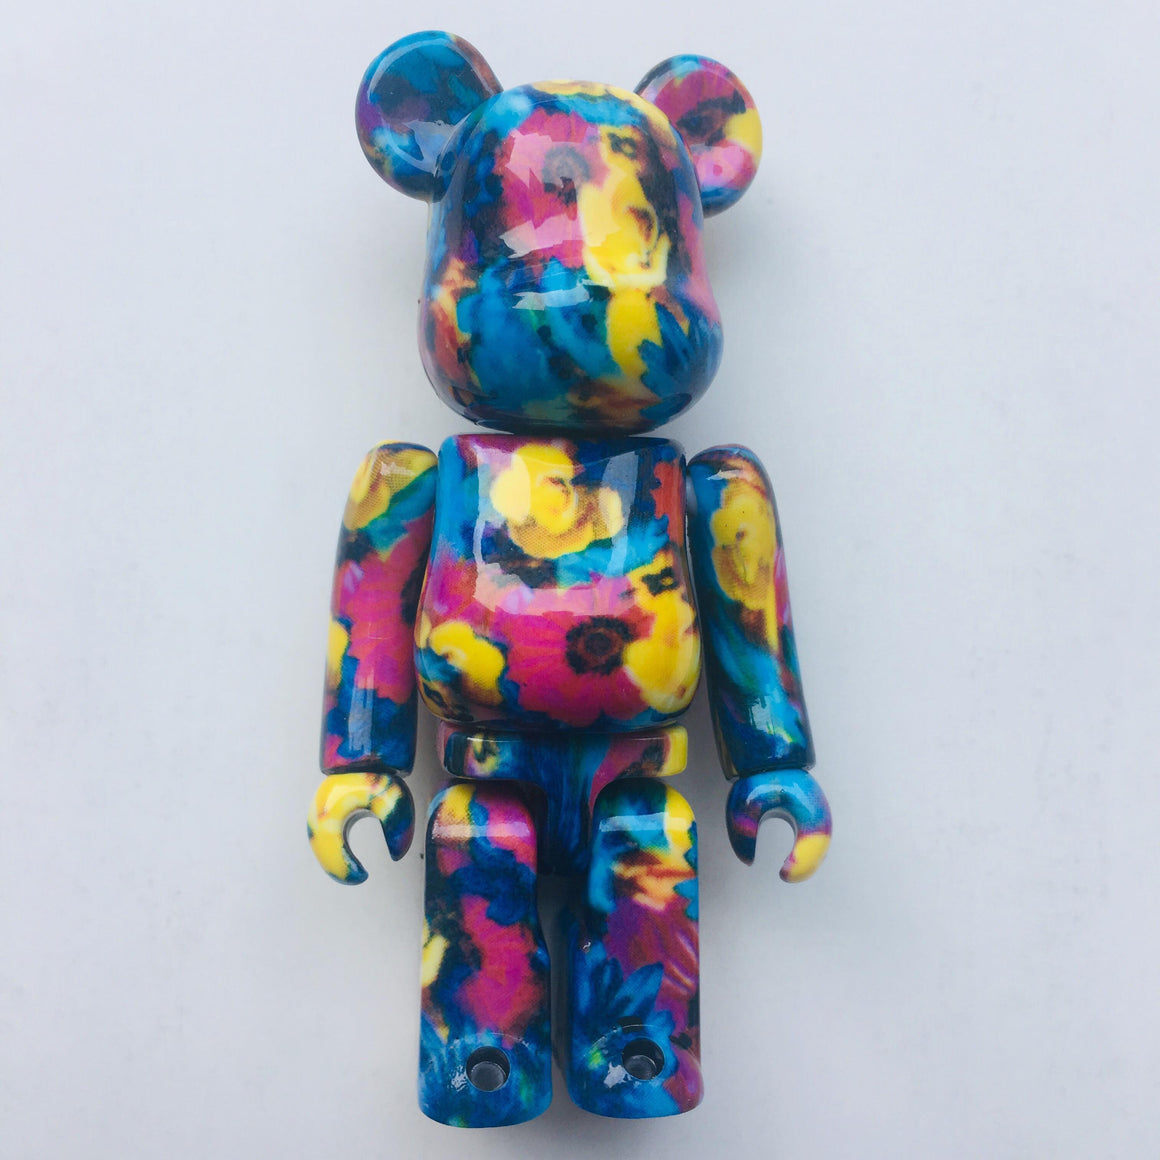 Mika Ninagawa Anemone 100% + 400% Bearbrick Set from Medicom Toy